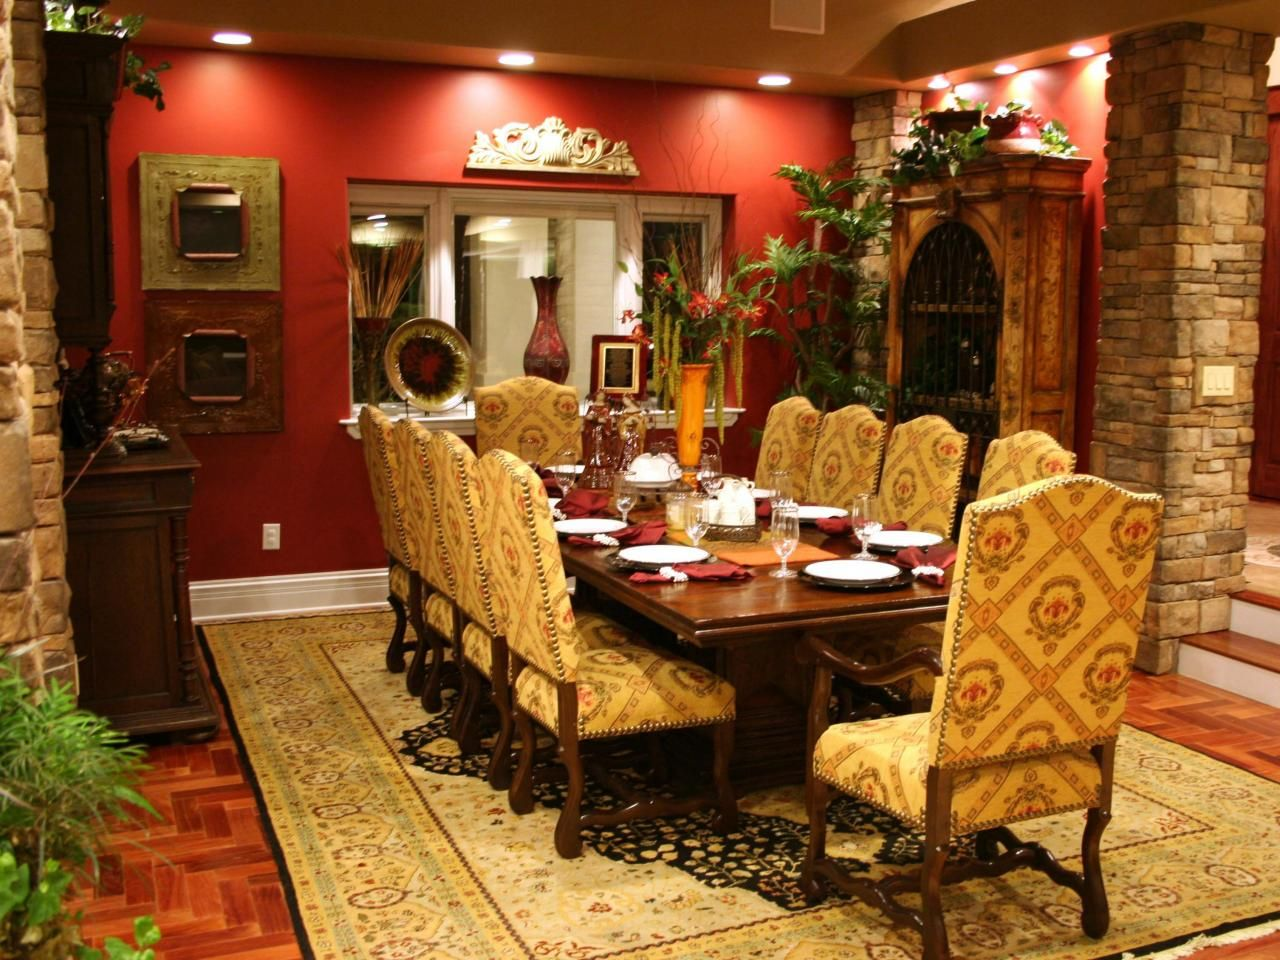 Rooms Viewer  Rooms And Spaces Design Ideas  Photos Of Kitchen Alluring Old Fashioned Dining Room Sets Decorating Inspiration